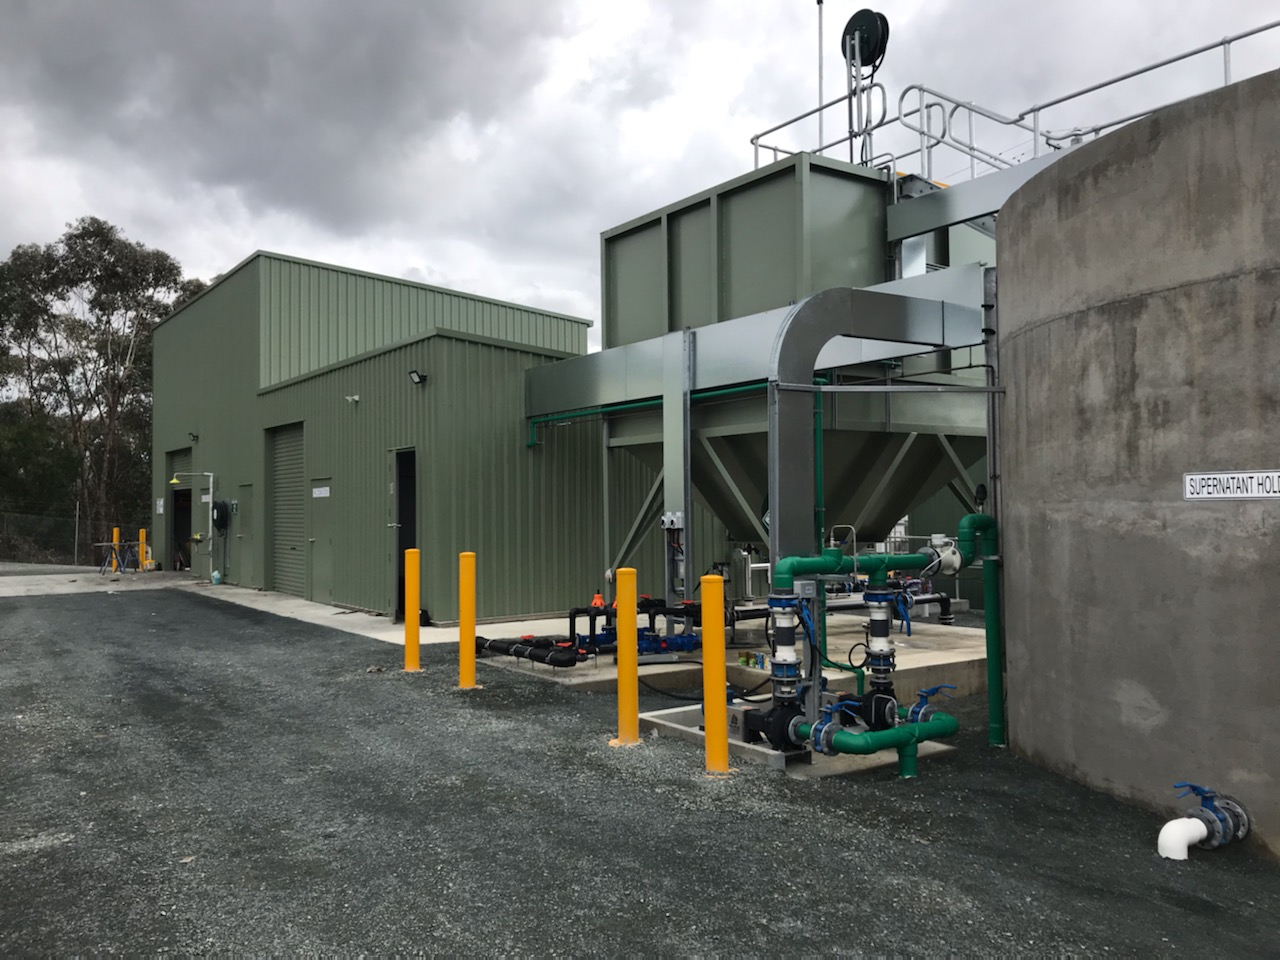 Heathcote WTP Upgrade - New PAC Dosing Building and Thickener